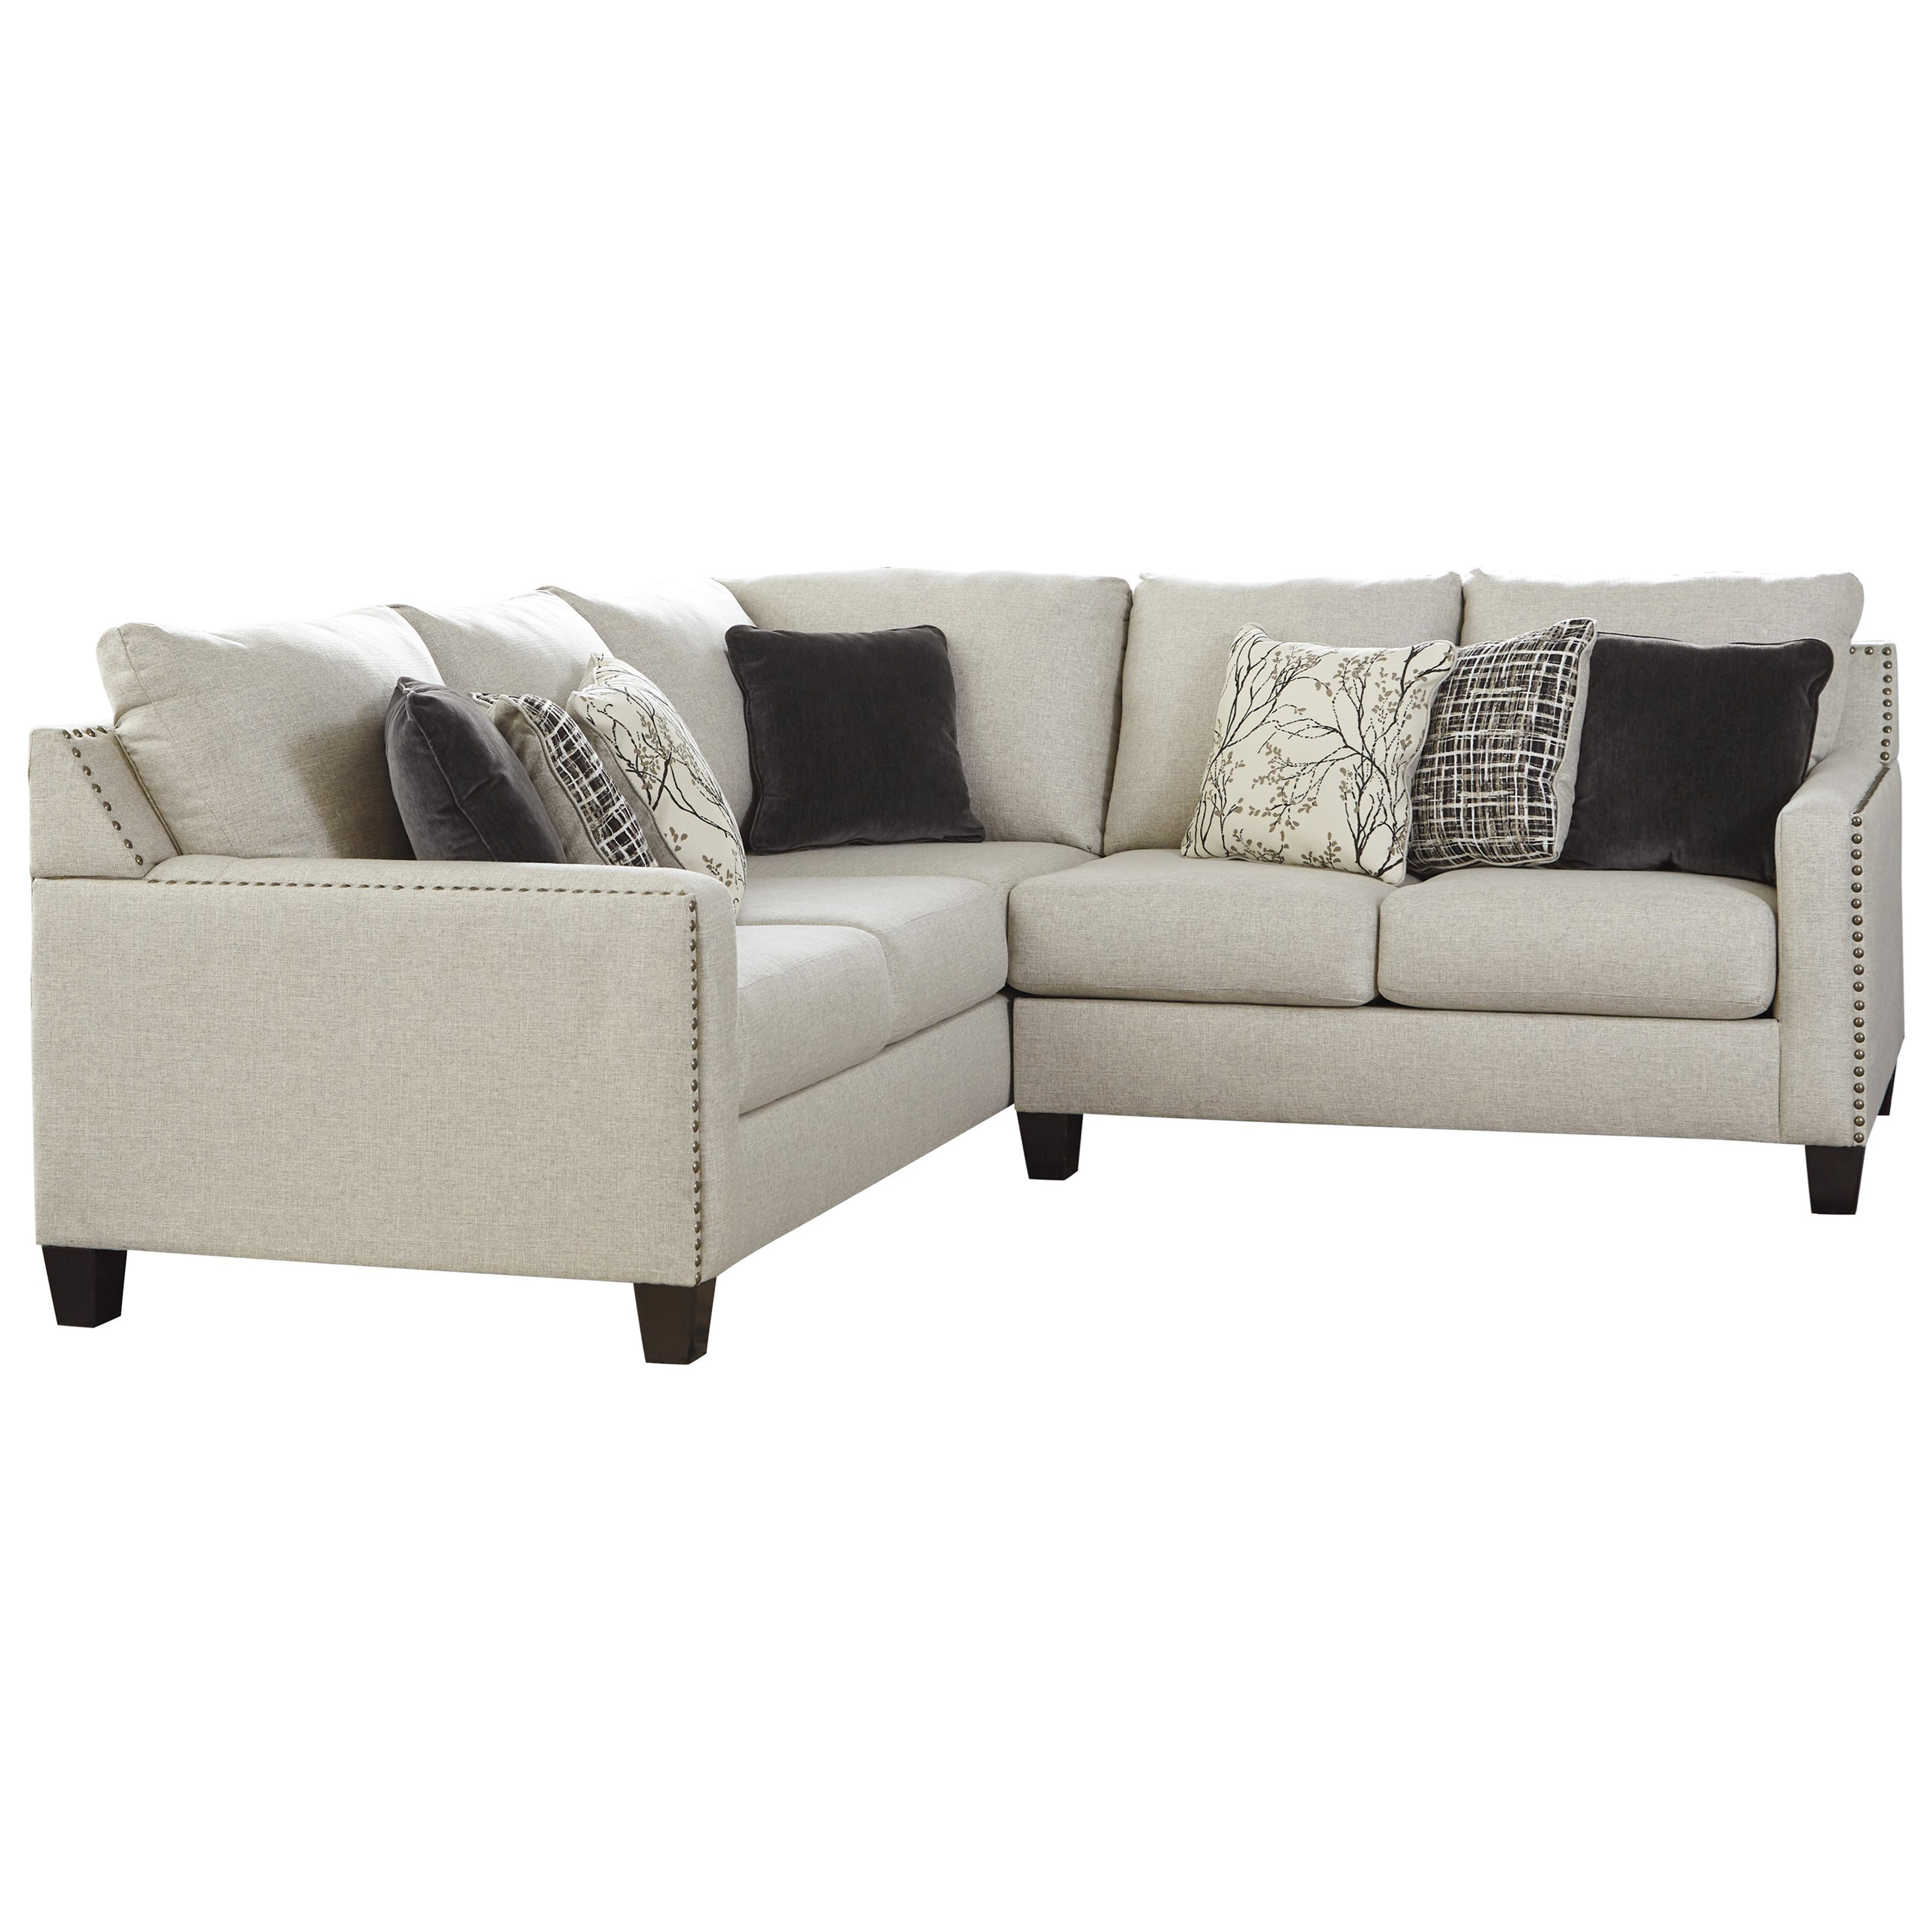 2-Piece Sectional with Nailhead Trim Accents